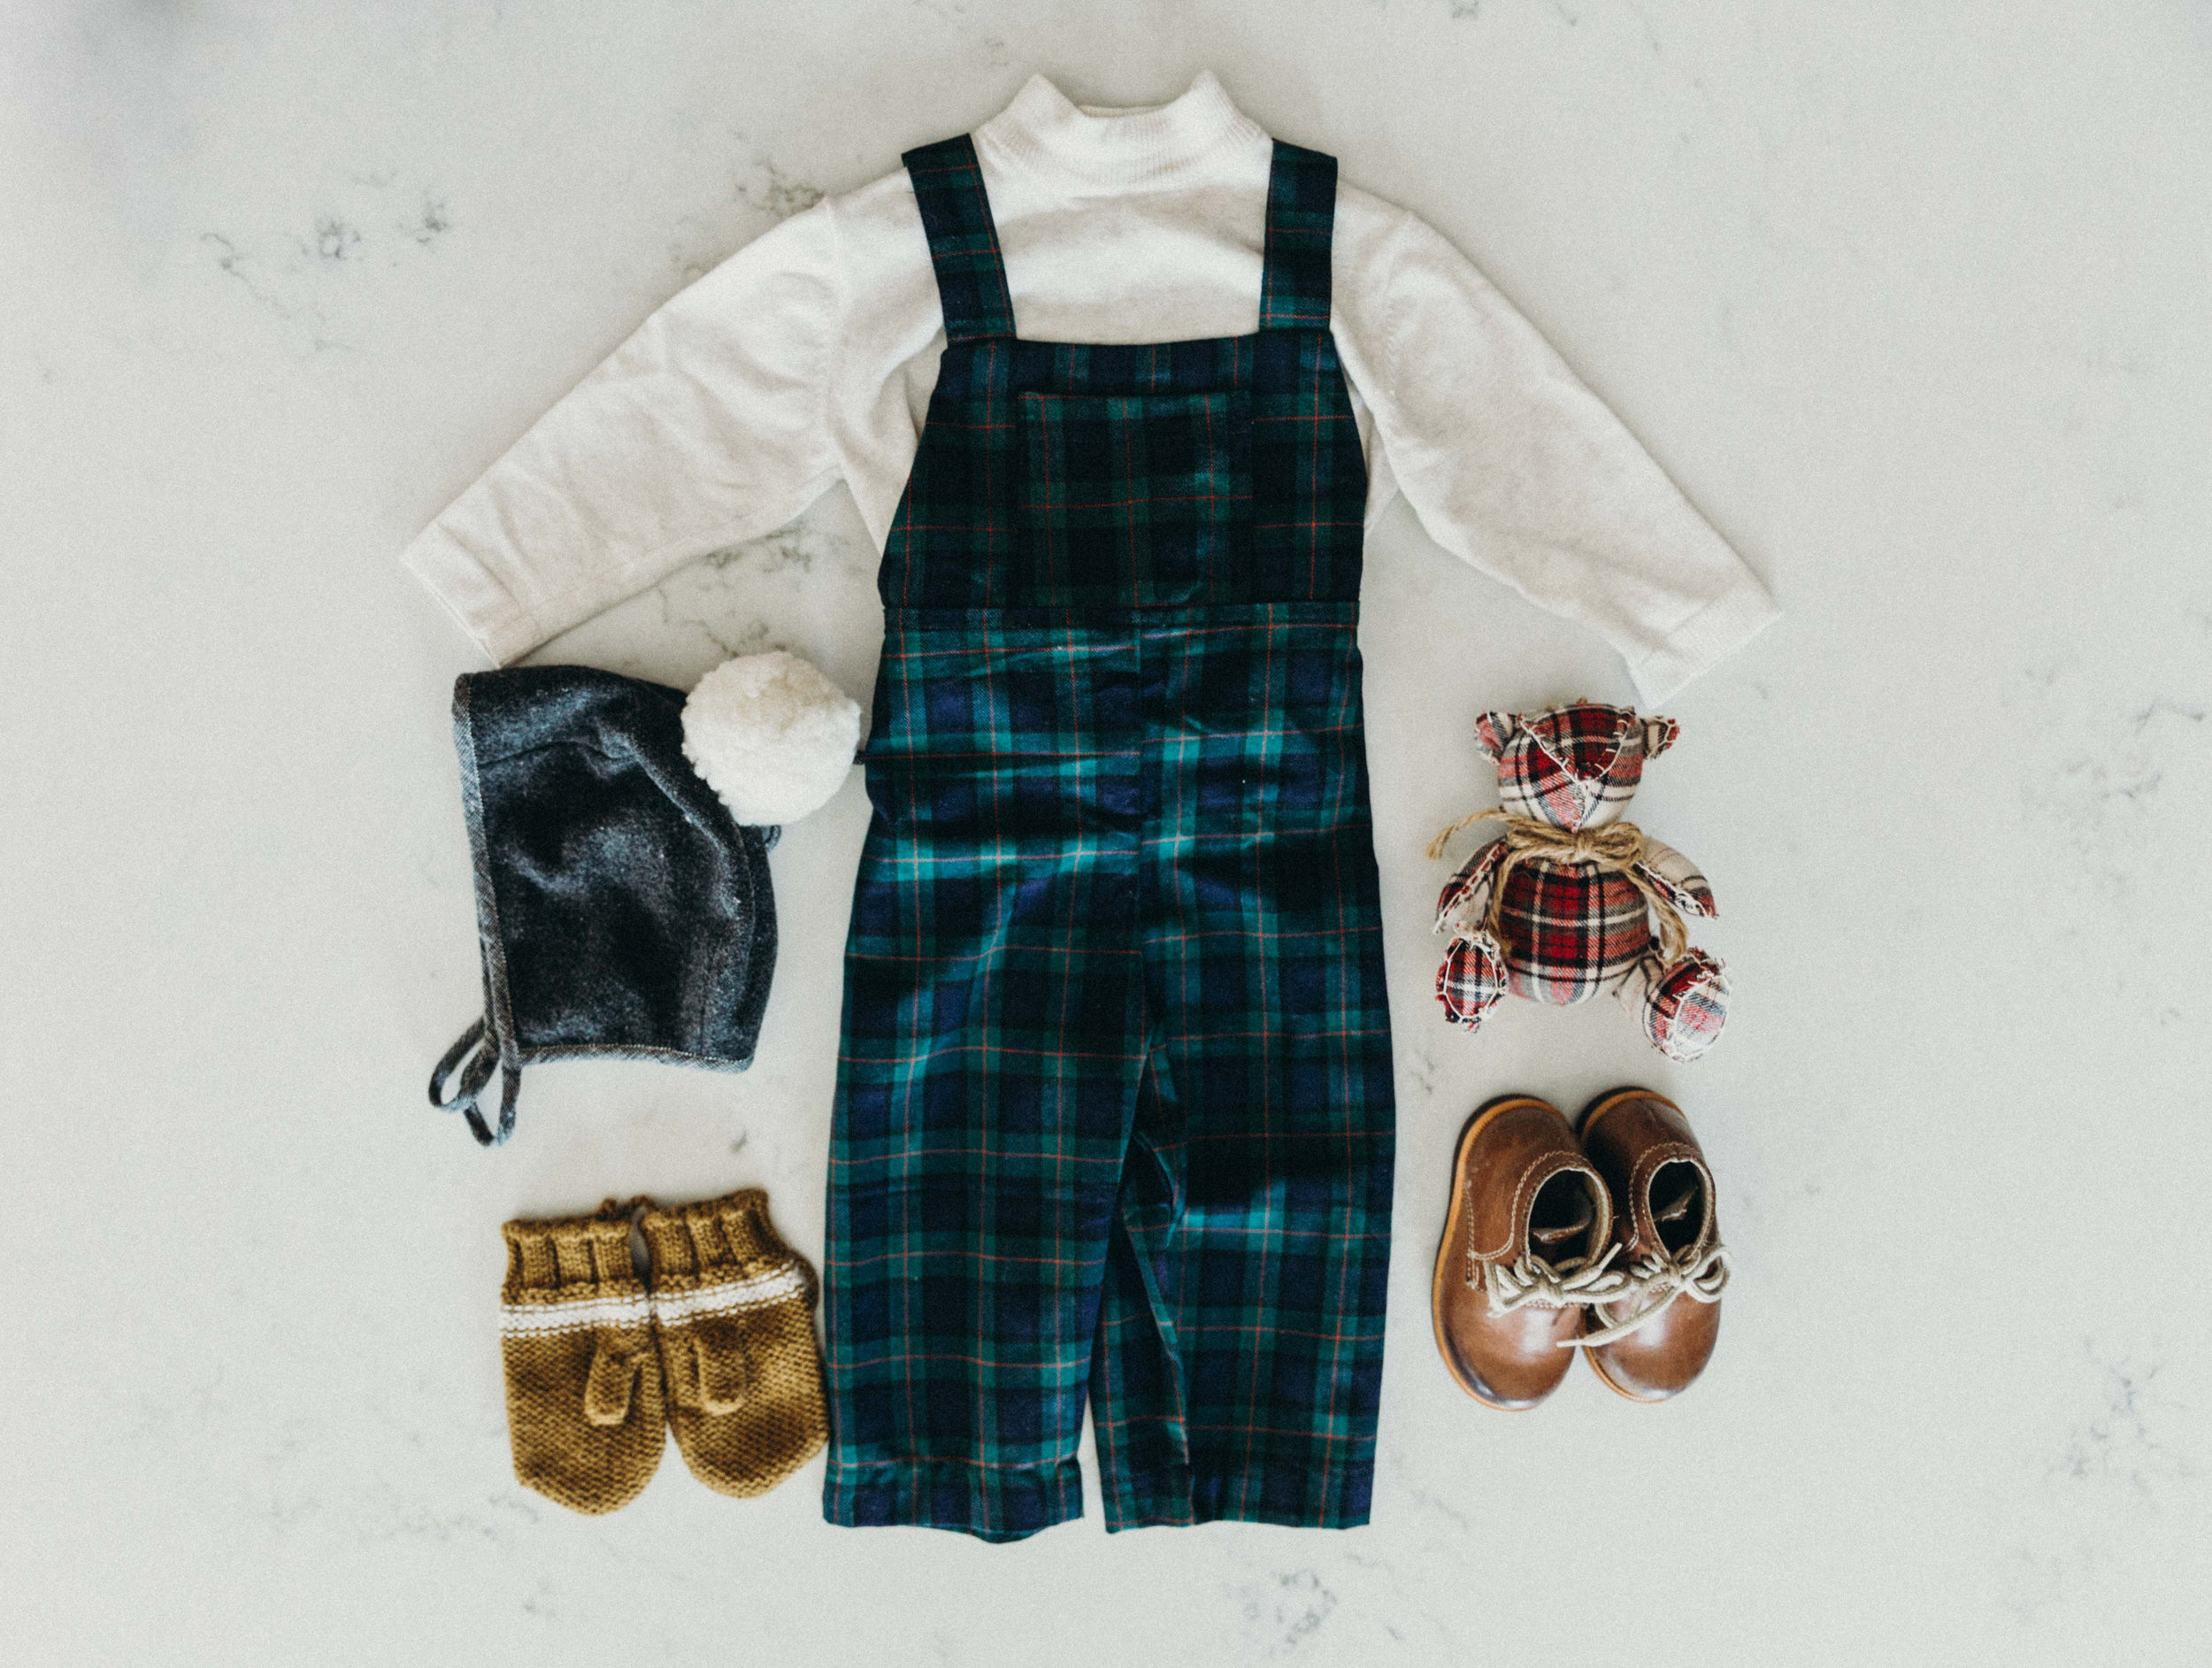 James' Christmas Eve outfit: mittens by Fin & Vince in honeycomb, pom bonnet by Briar Handmade, overalls by Fin & Vince, milo boots By The Humble Soles (use code cathlins10 for 10% off your Humble soles order)